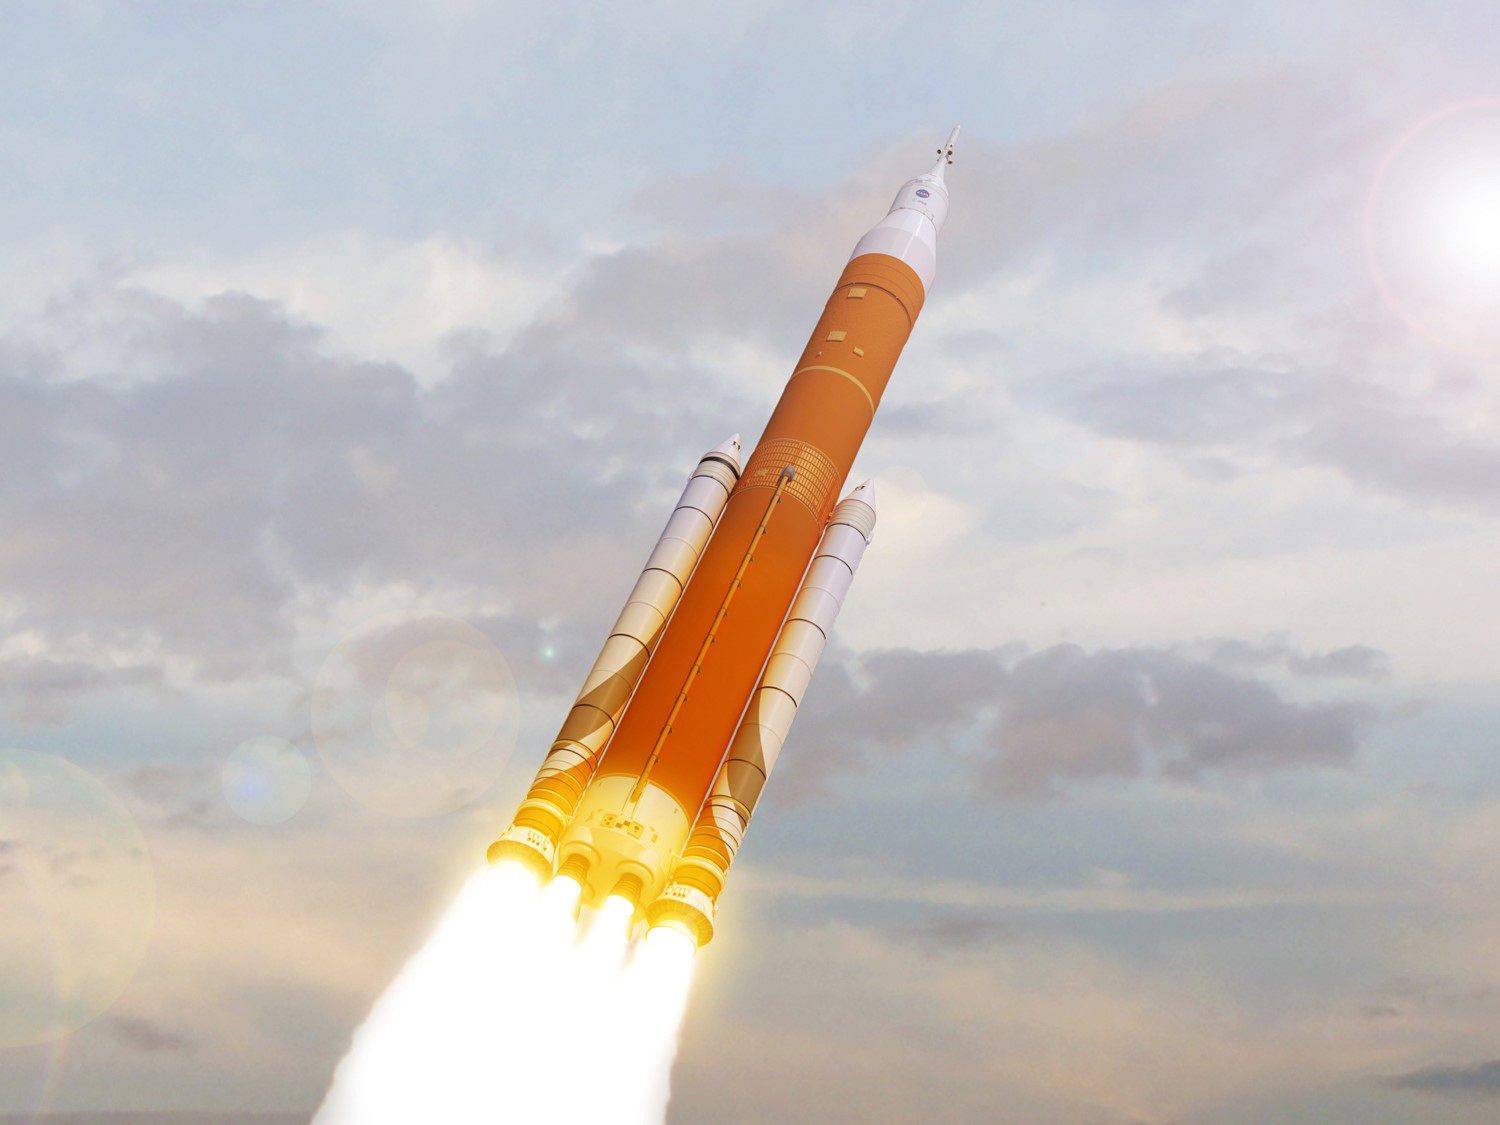 The Orion spacecraft is the next generation of deep space vehicle being built by NASA